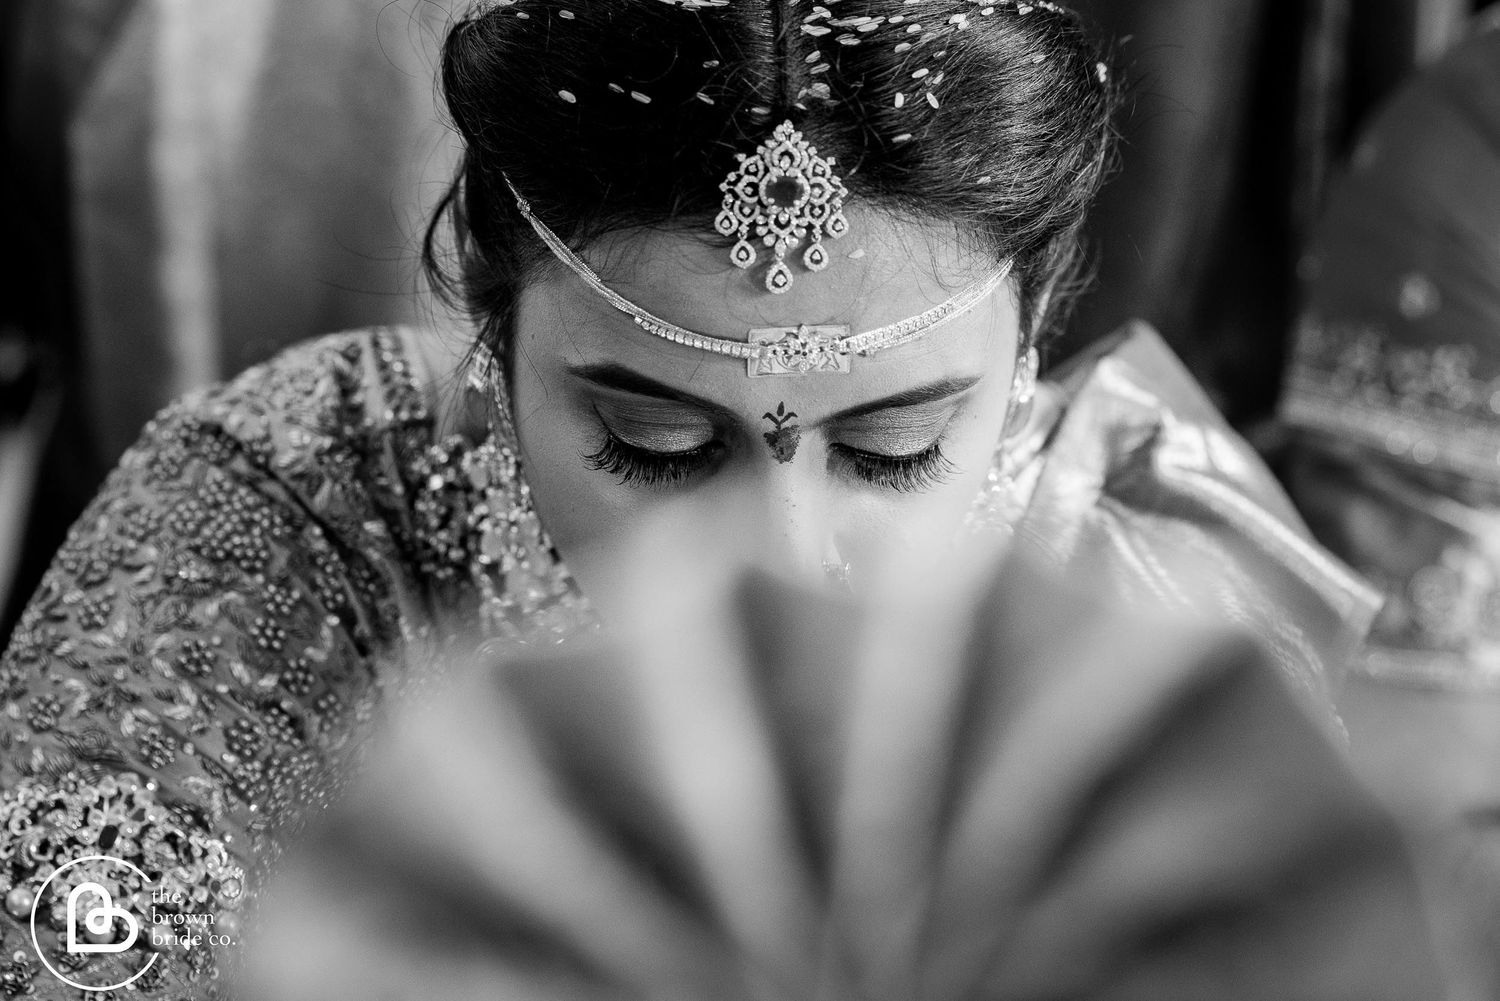 best hyderabad wedding venues | best candid wedding photography, brown bride photo shoot